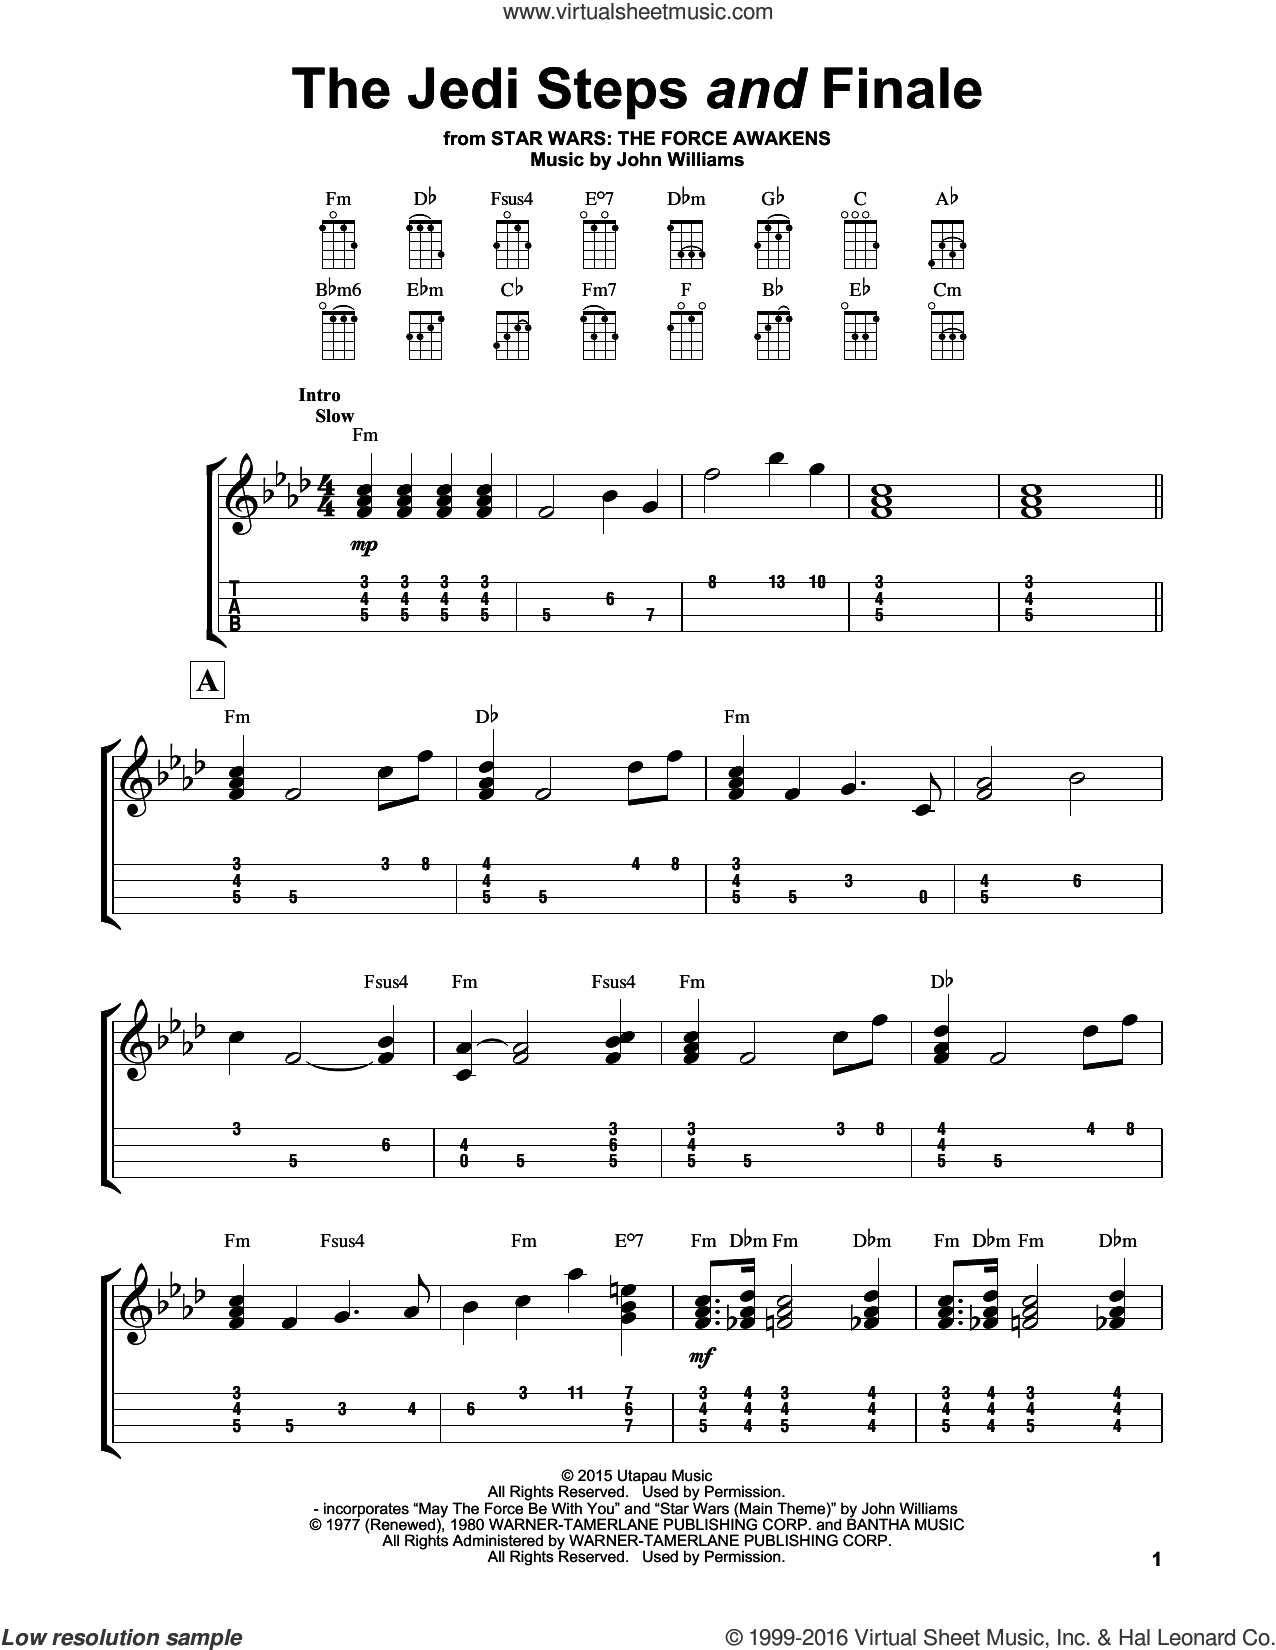 The Jedi Steps And Finale sheet music for ukulele by John Williams, intermediate skill level